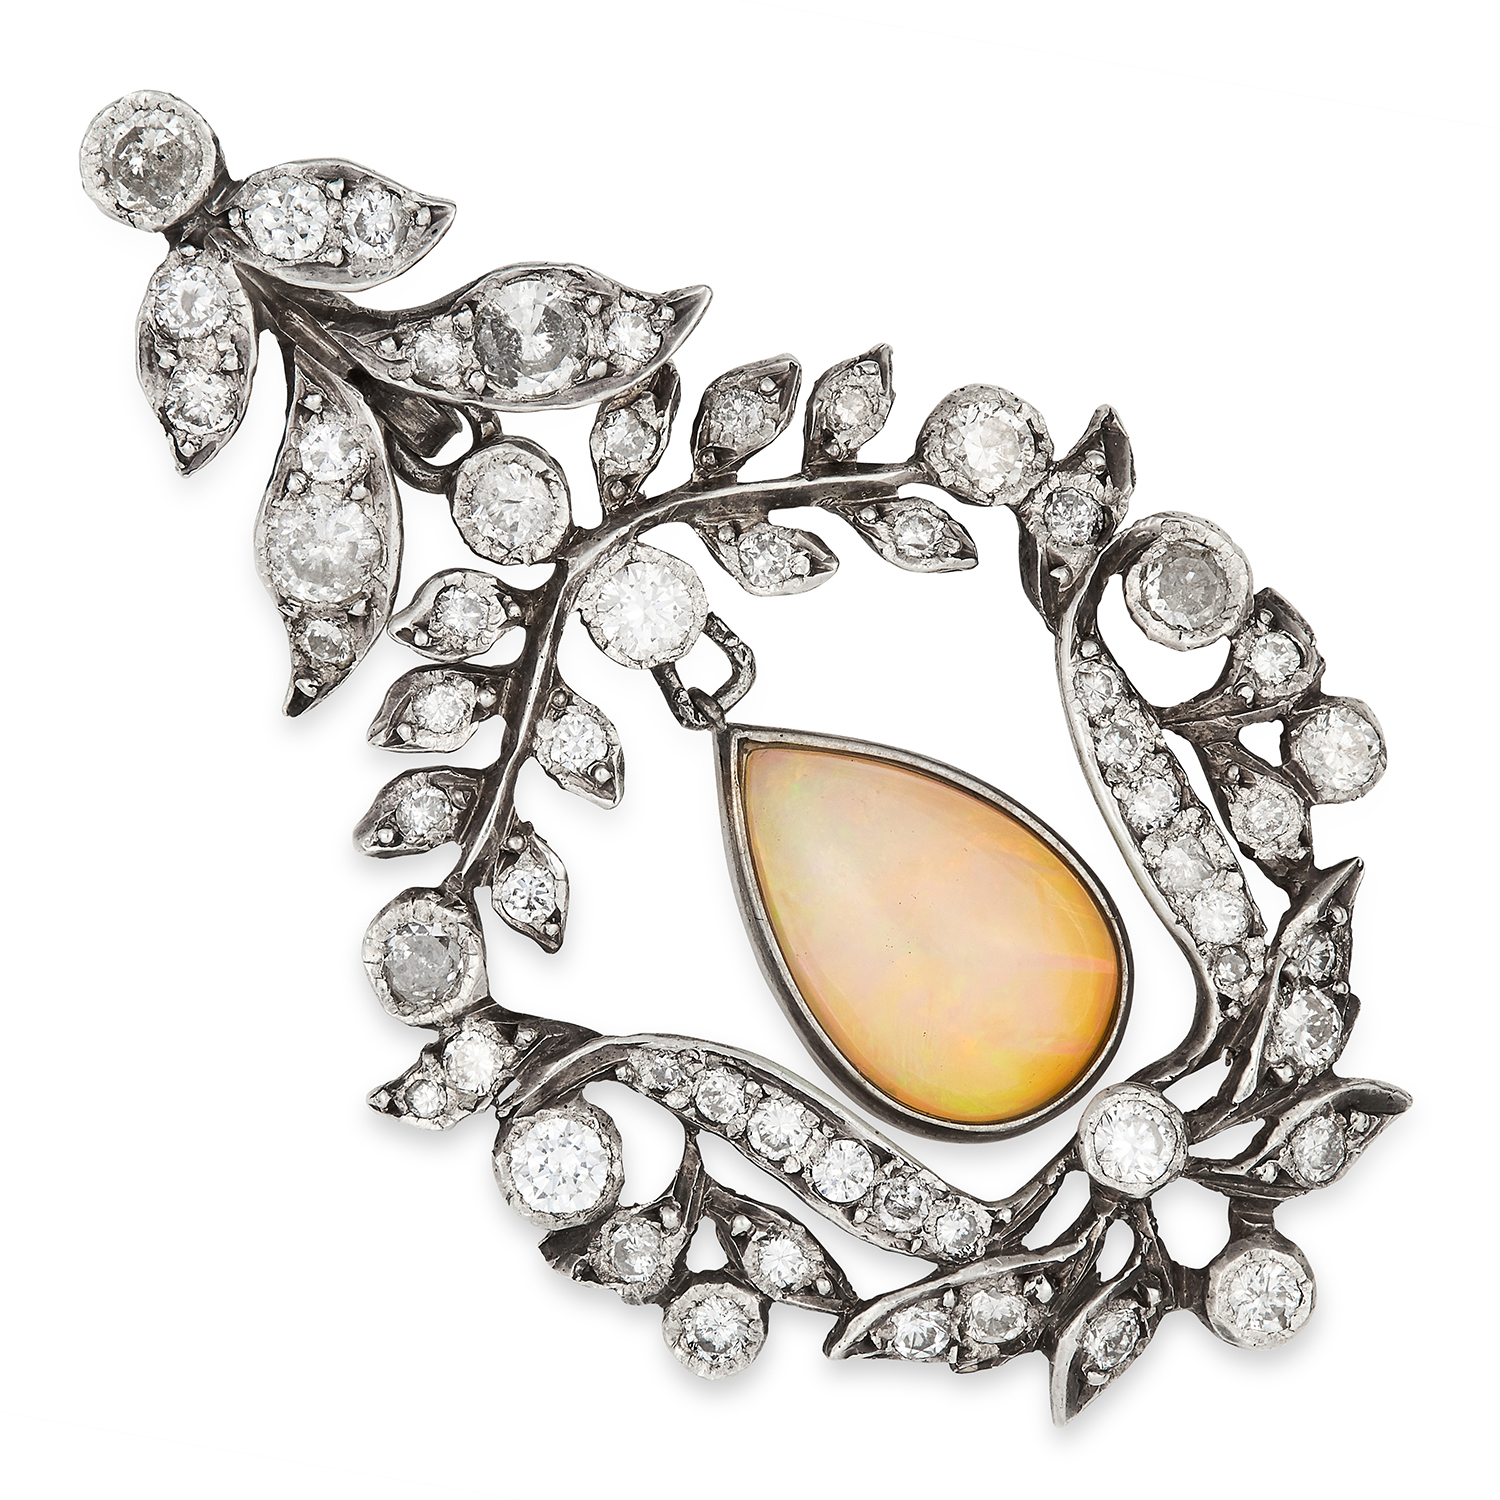 Los 29 - ANTIQUE OPAL AND DIAMOND PENDANT set with a pear cut opal in a foliate border set with round cut